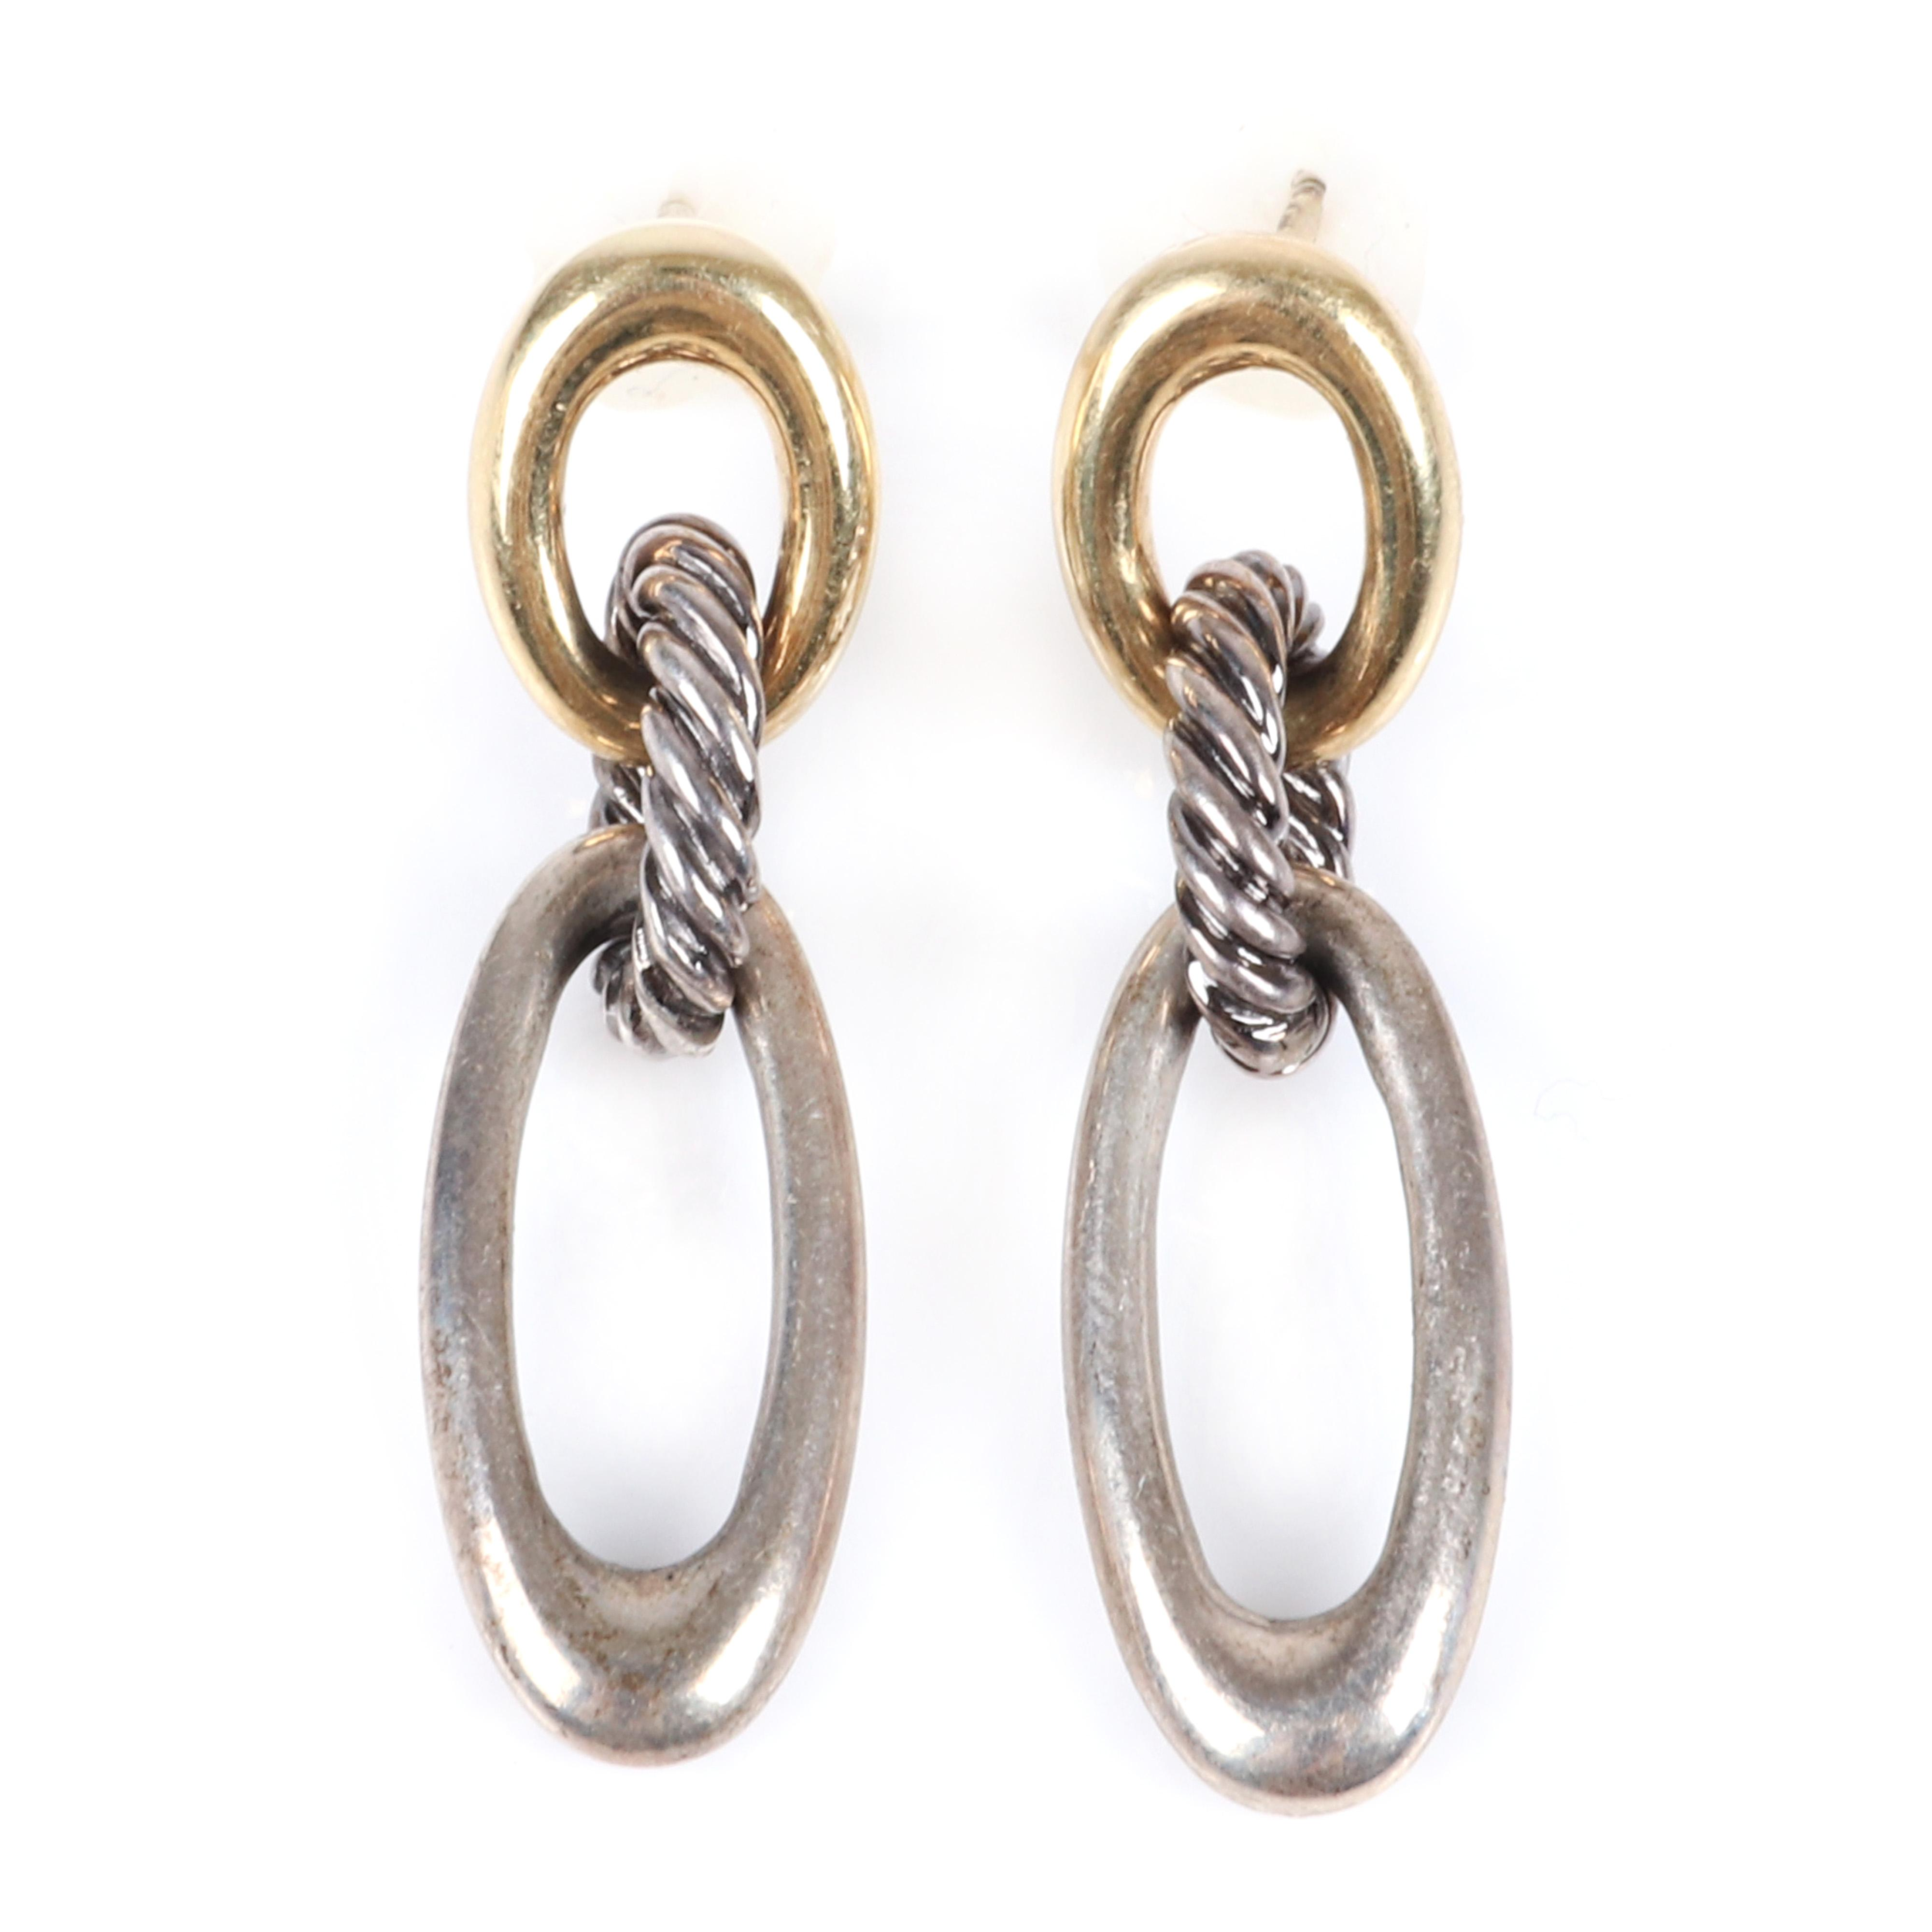 """David Yurman triple oval link earrings with 18K yellow gold and & sterling silver cable and oval links. 1 5/8""""H"""